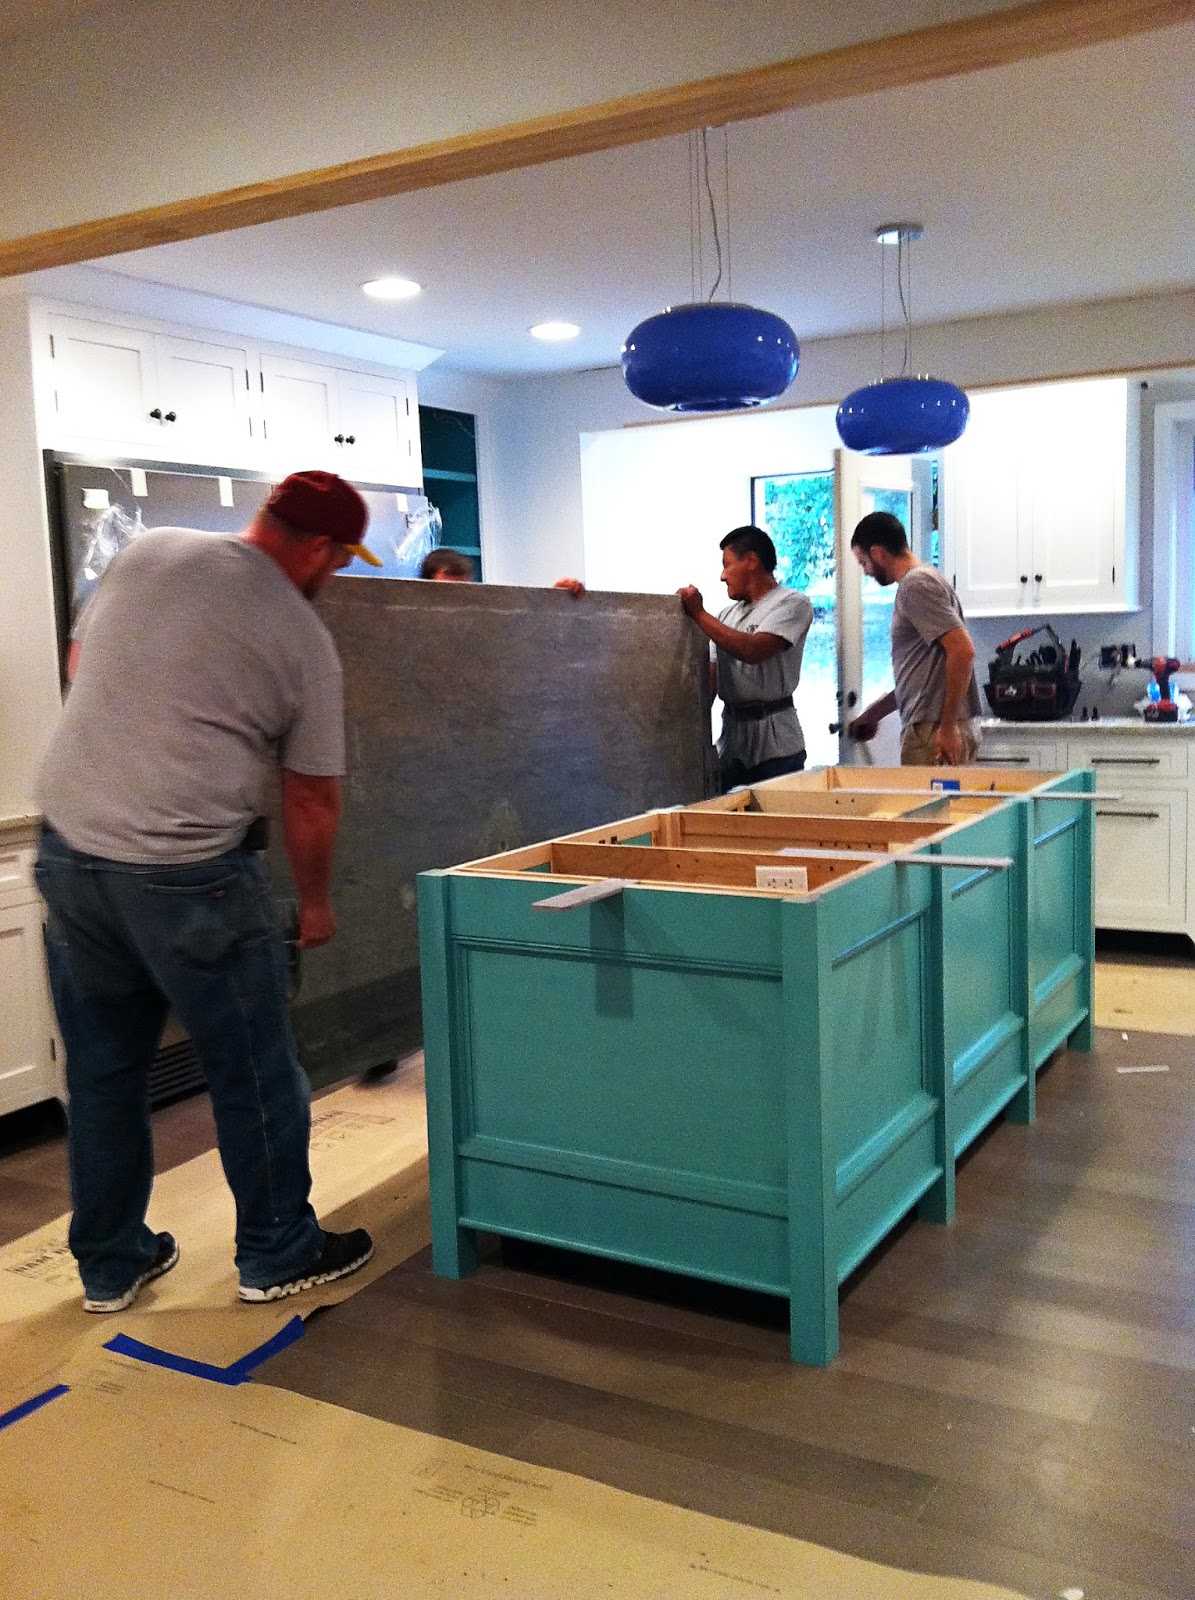 Castle On King Counter Tops An Endless Search For The One: granite 25 per square foot